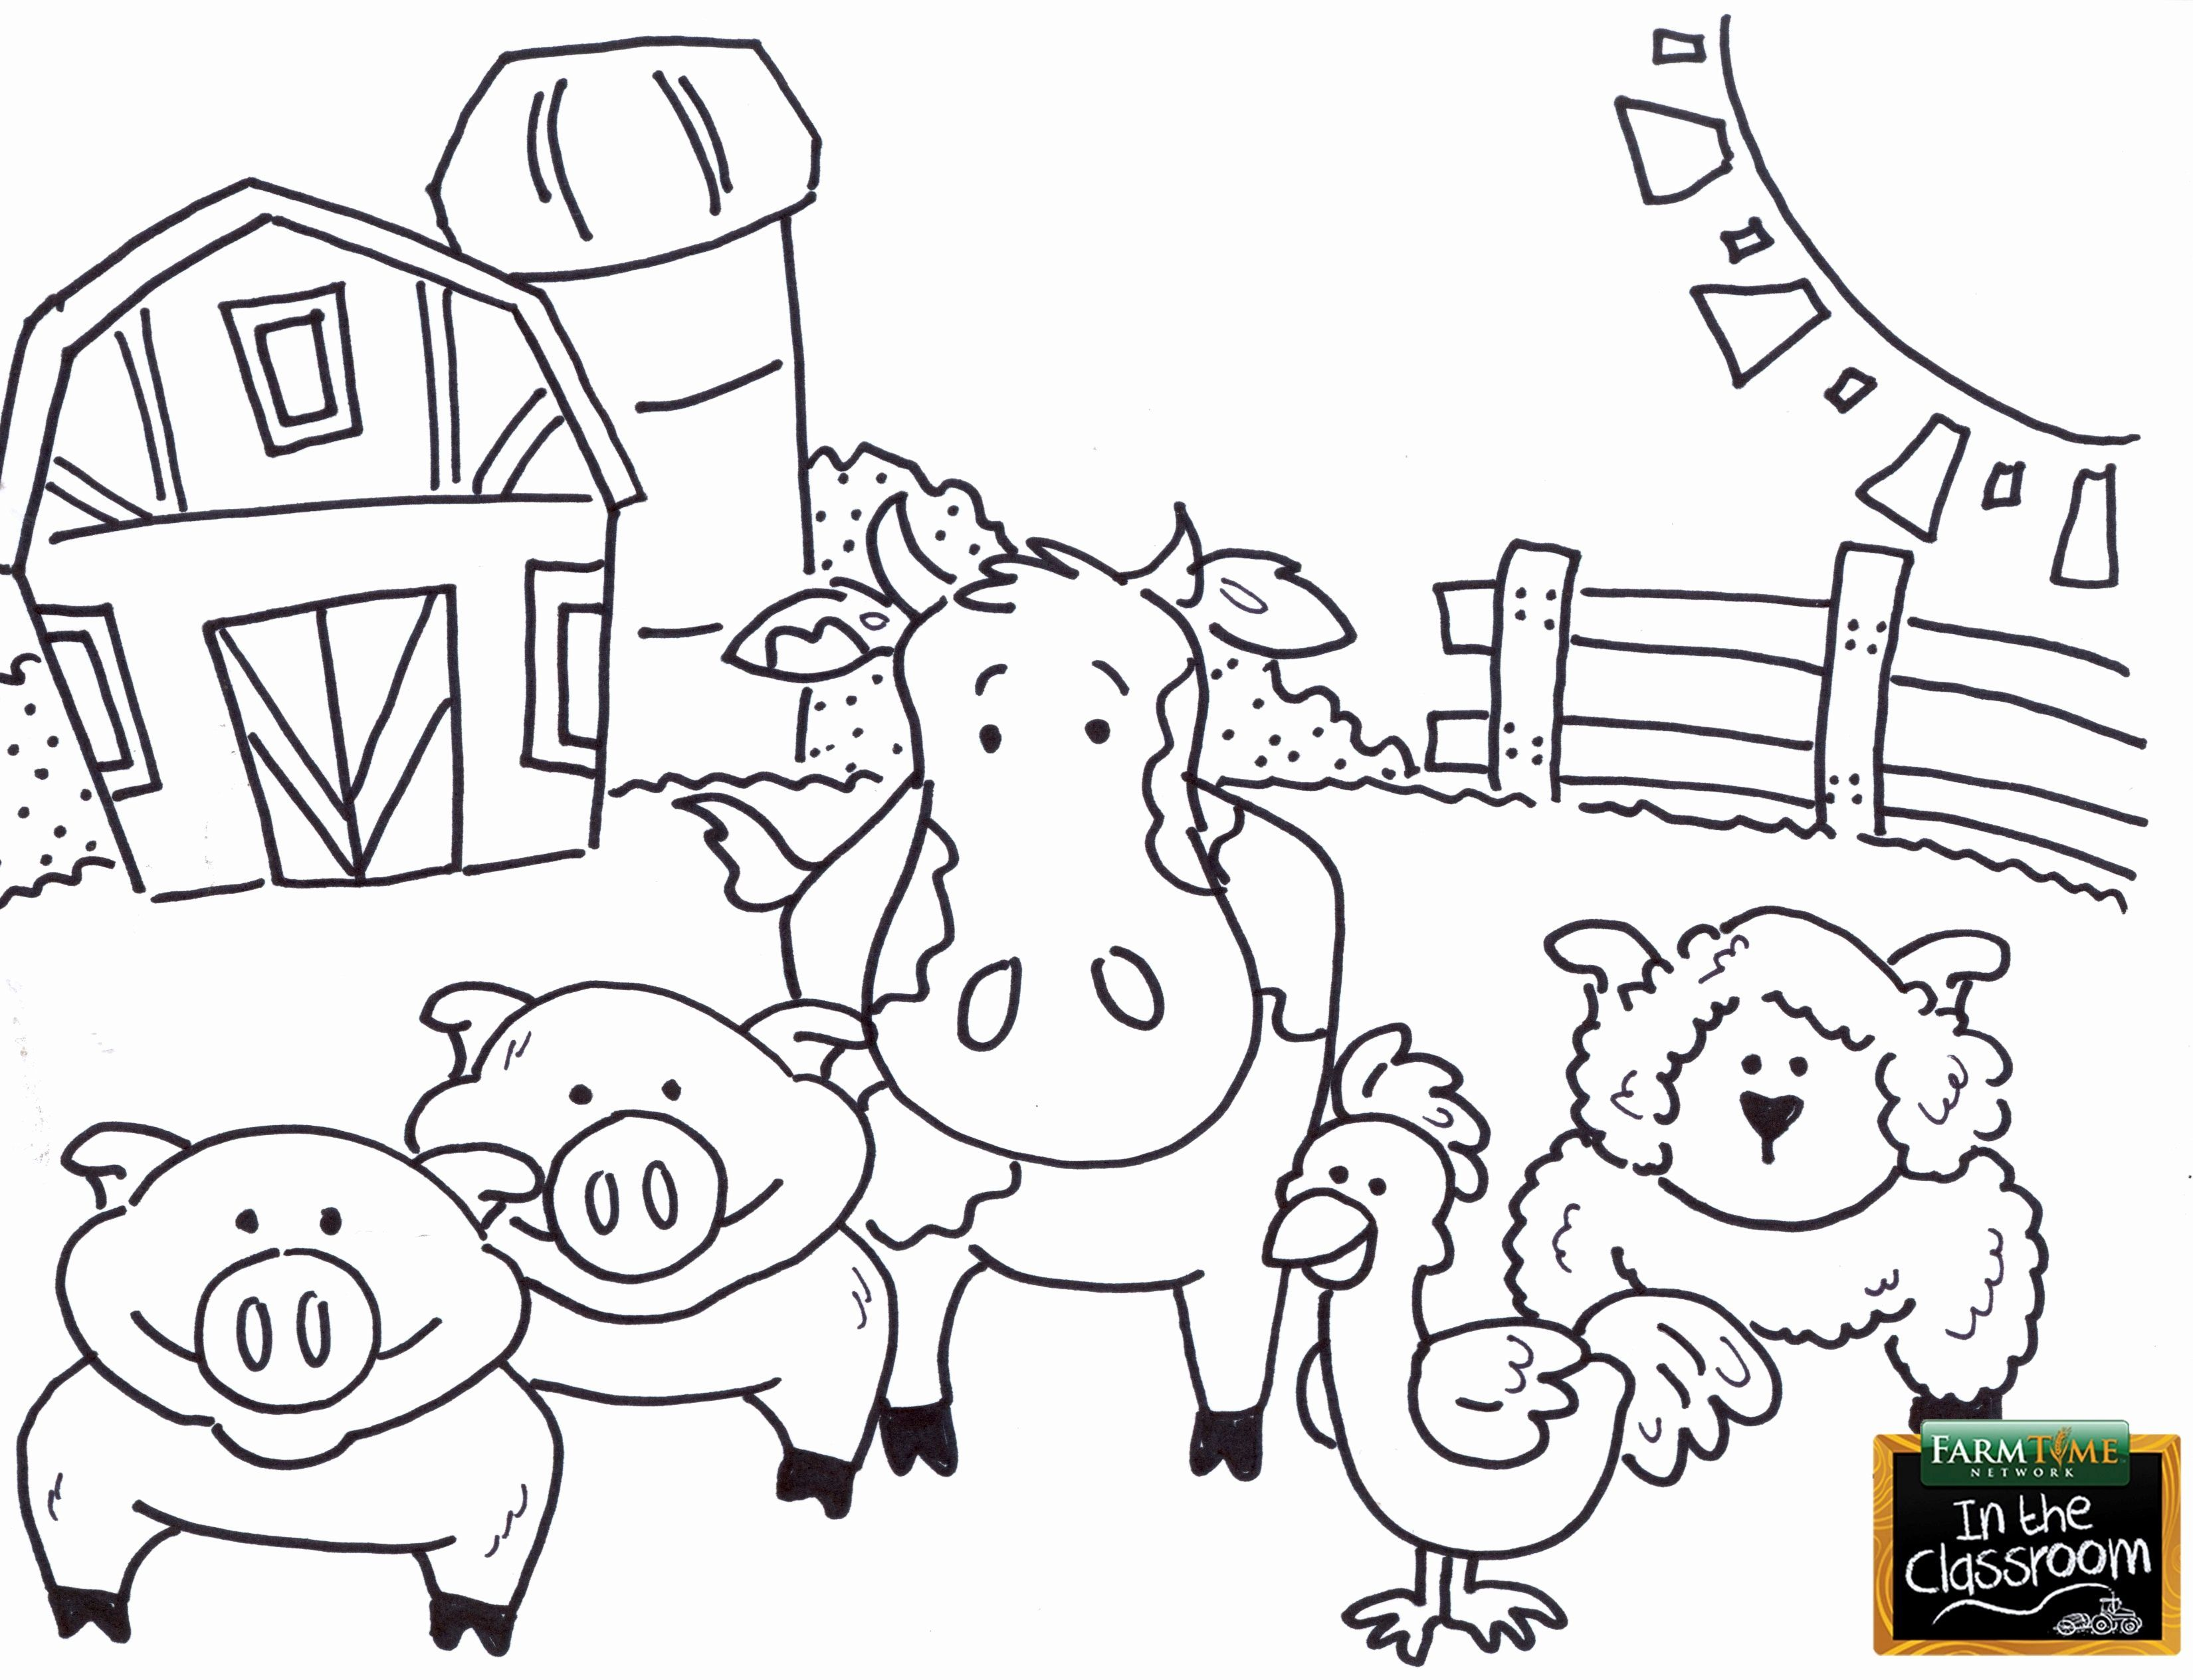 Farm Animals Coloring Page Beautiful Pin By Caiah Wagner On Agriculture Farm Animal Coloring Pages Animal Coloring Books Giraffe Coloring Pages